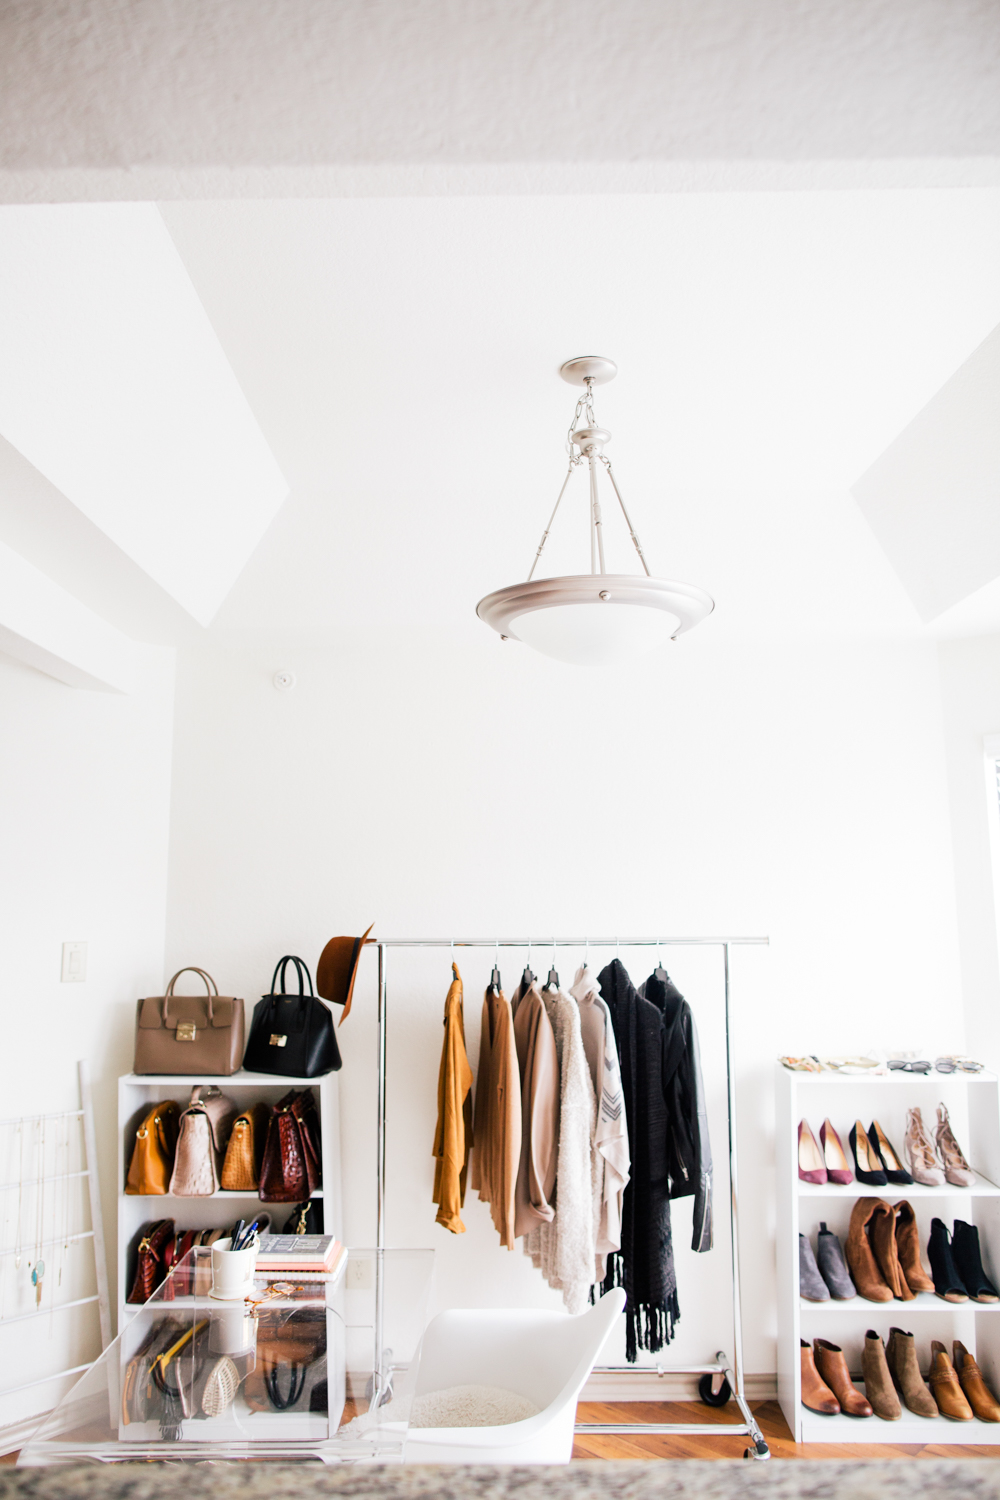 livvyland-blog-olivia-watson-west-elm-home-office-before-after-reveal-pink-grey-cozy-chic-white-airy-girly-austin-texas-fashion-blogger-32